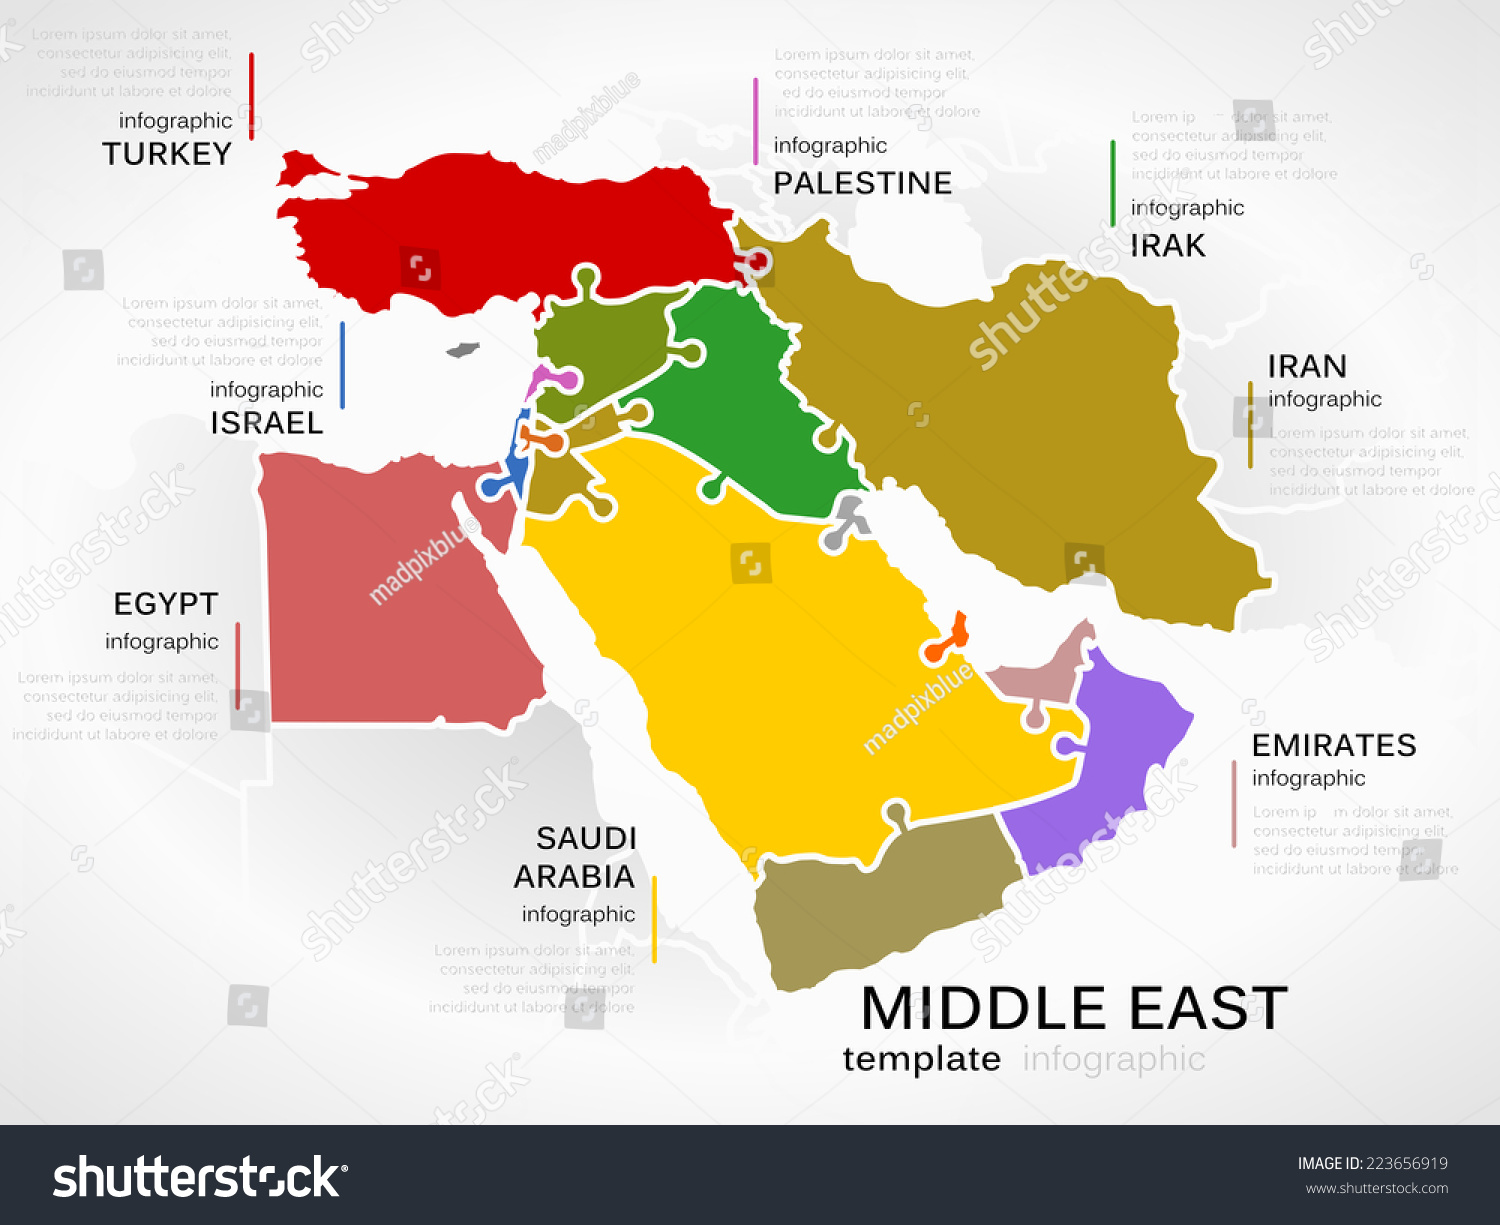 Middle East Map With Countries.Middle East Map Concept Infographic Template Stock Vector Royalty